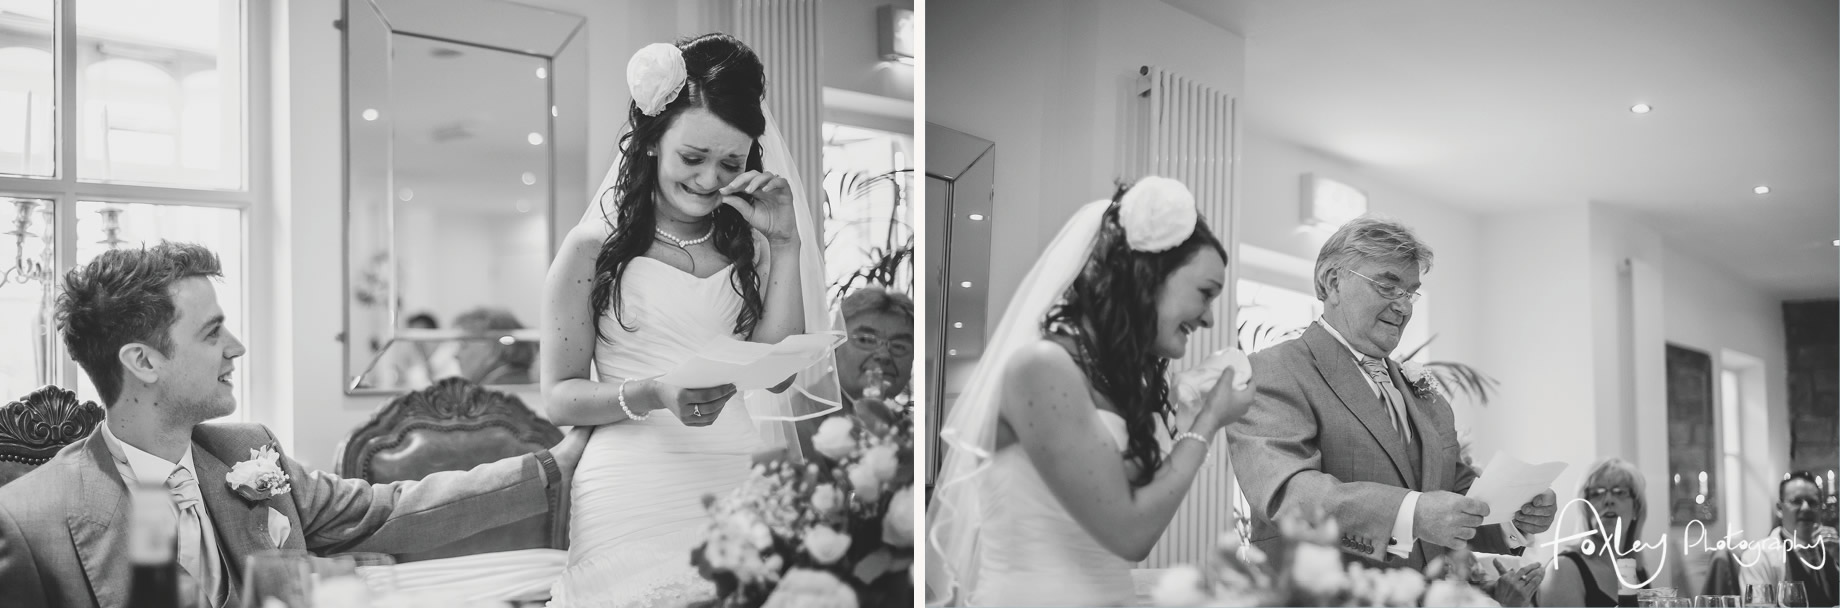 Sarah-and-Tony-Wedding-Mitton-Hall-046